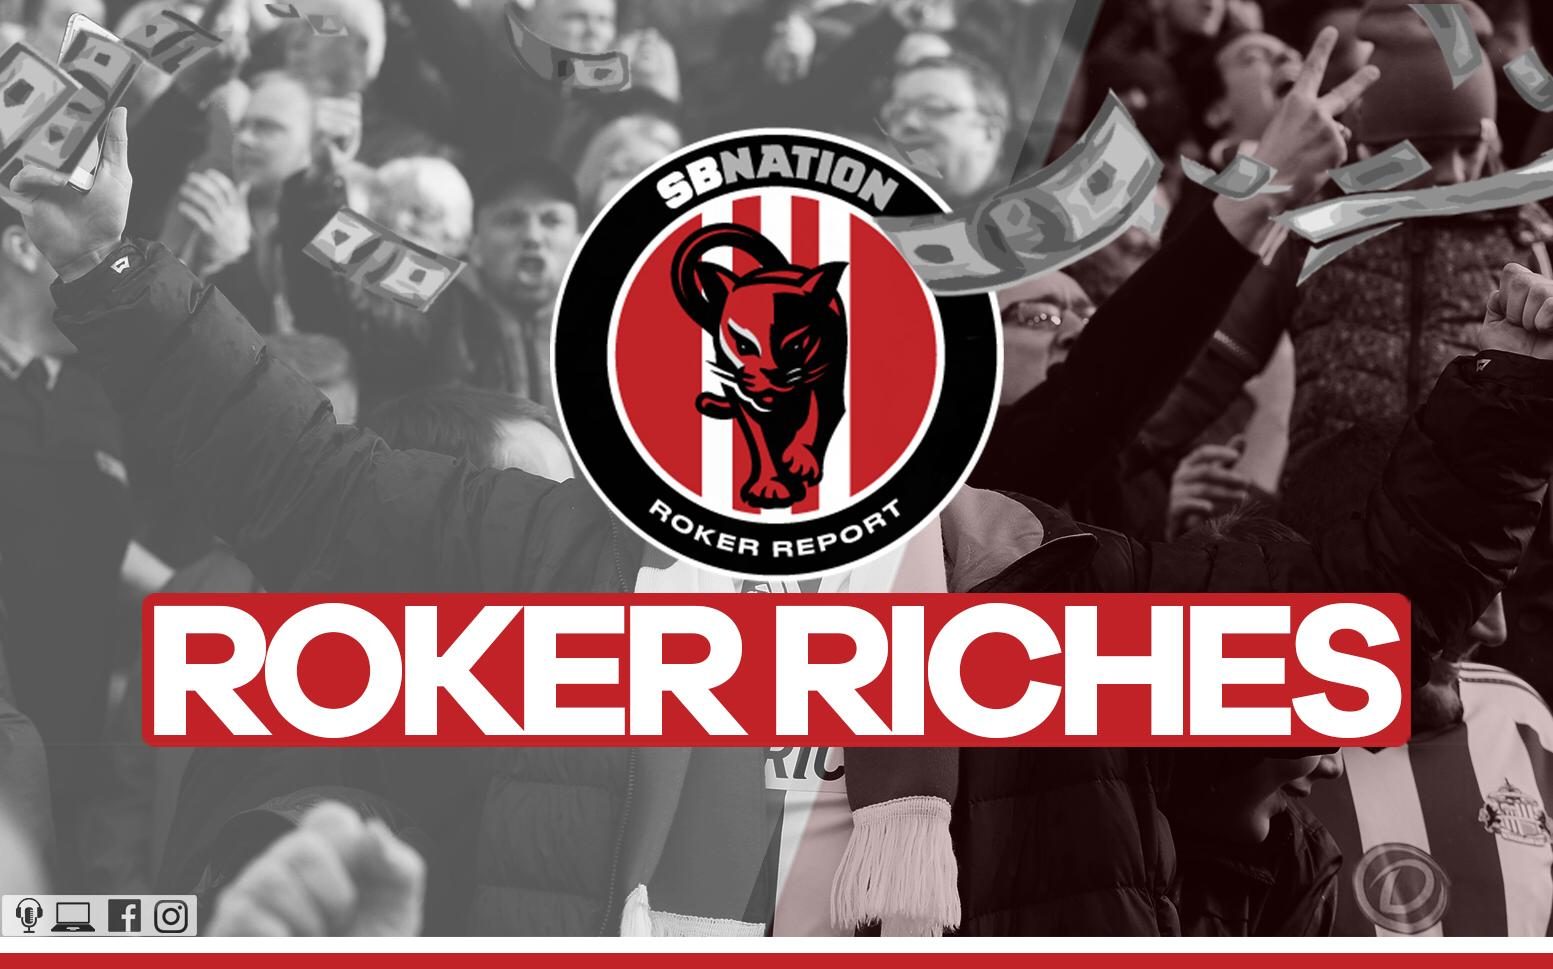 Roker Riches: Sunderland take on League One's in-form side on their own turf - hard to bet on!